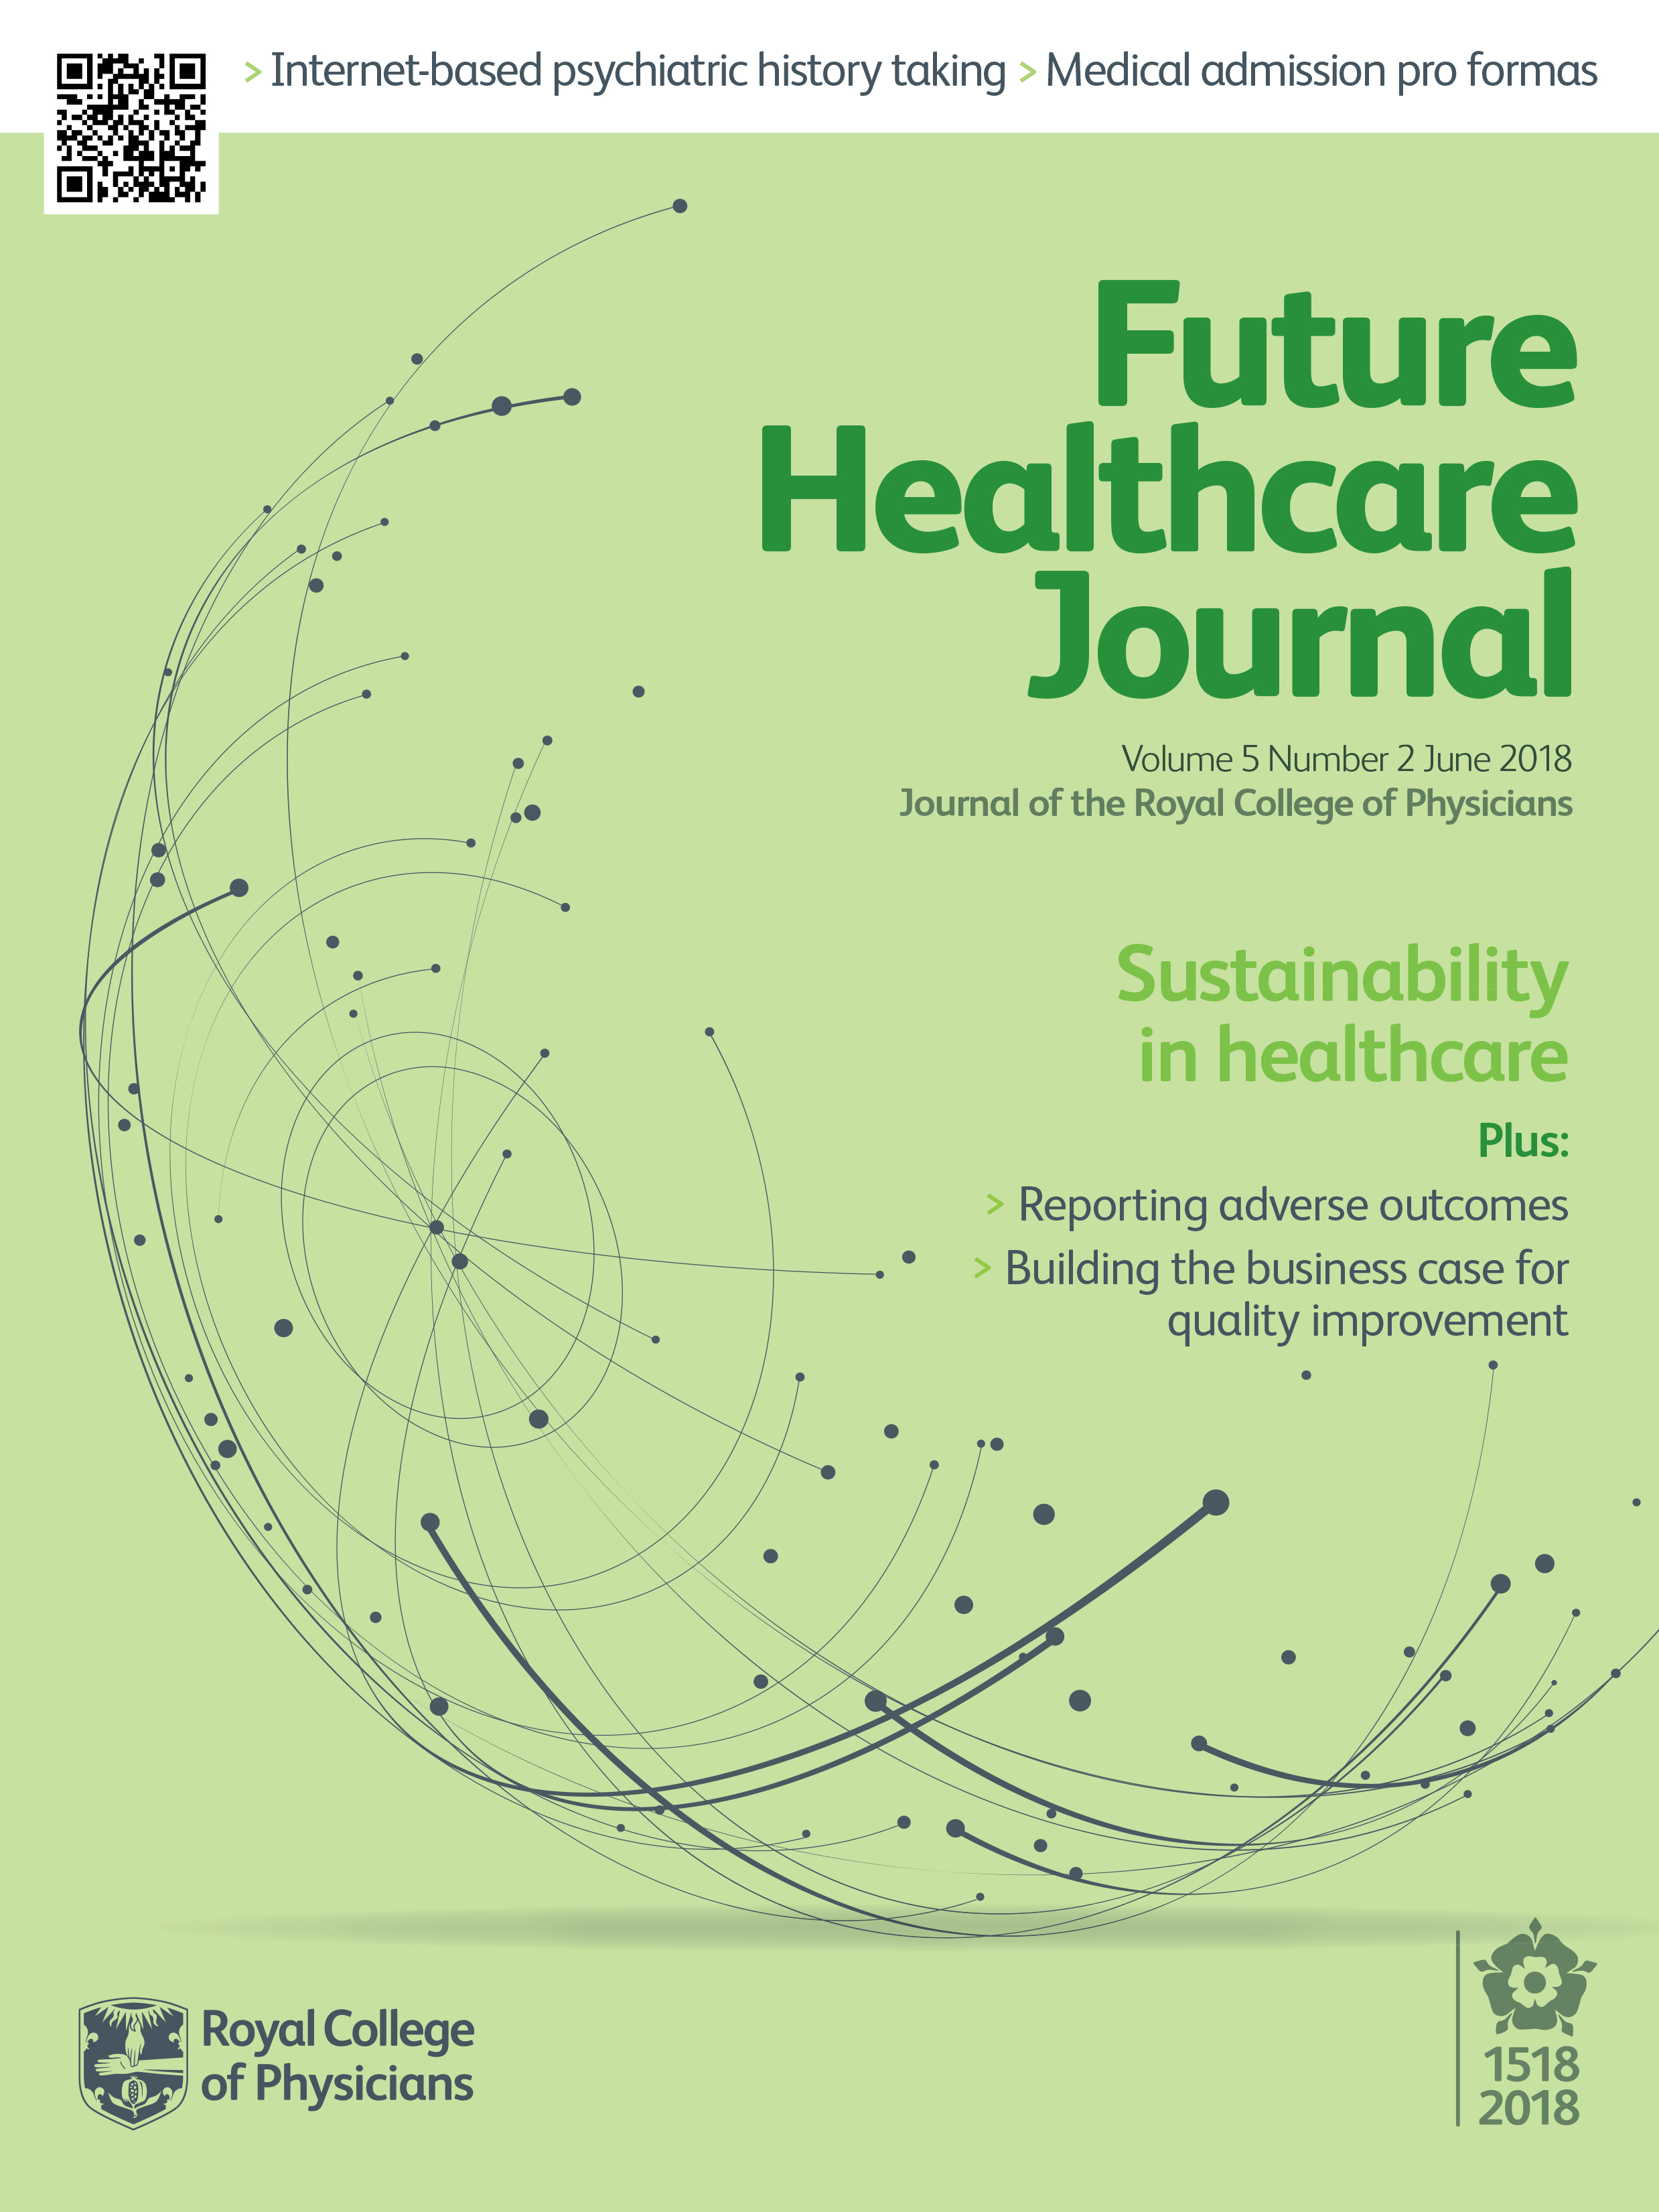 Future healthcare journal rcp london future healthcare journal front cover ccuart Gallery